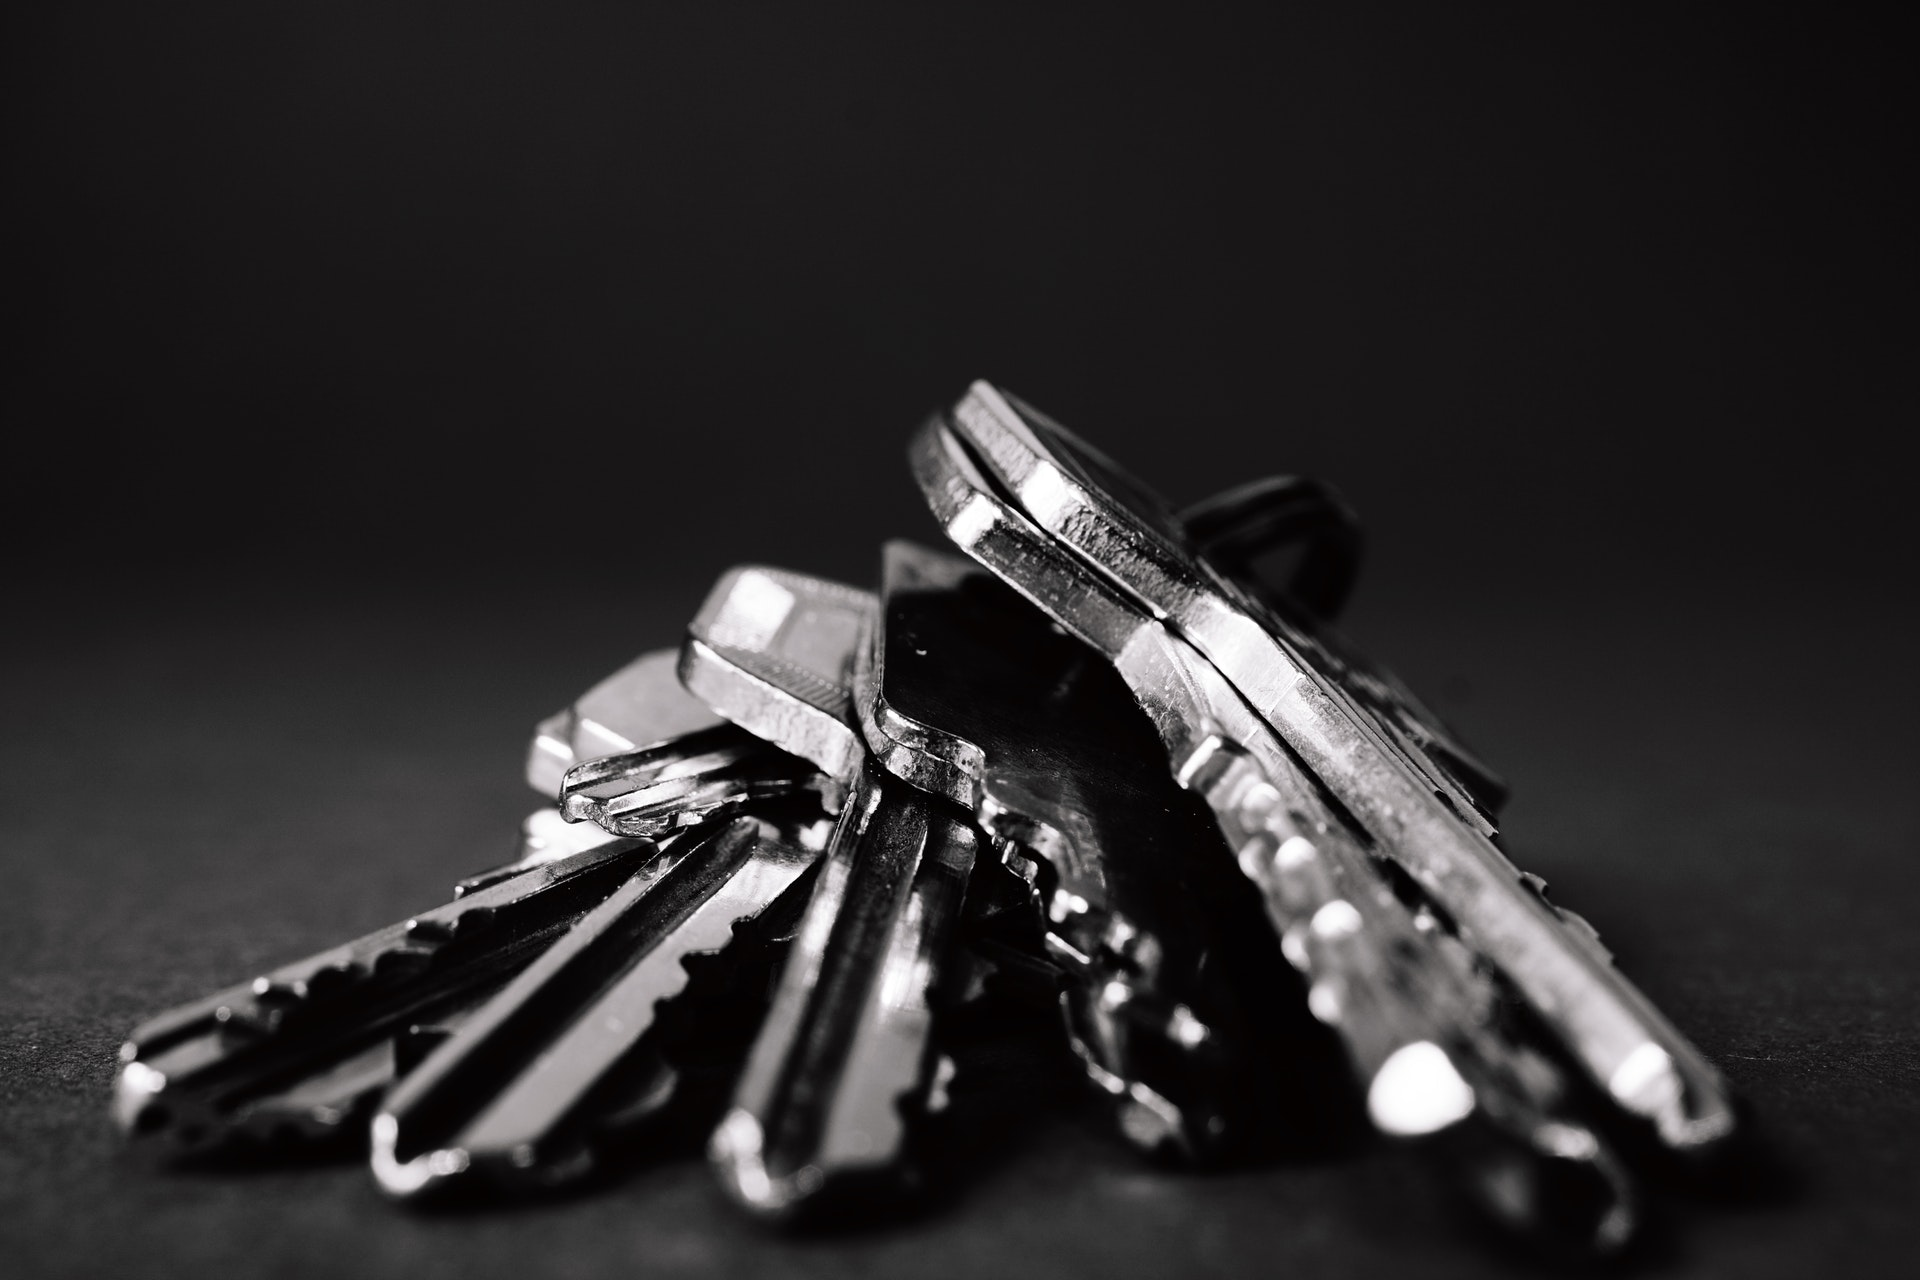 close-up-of-keys-333837